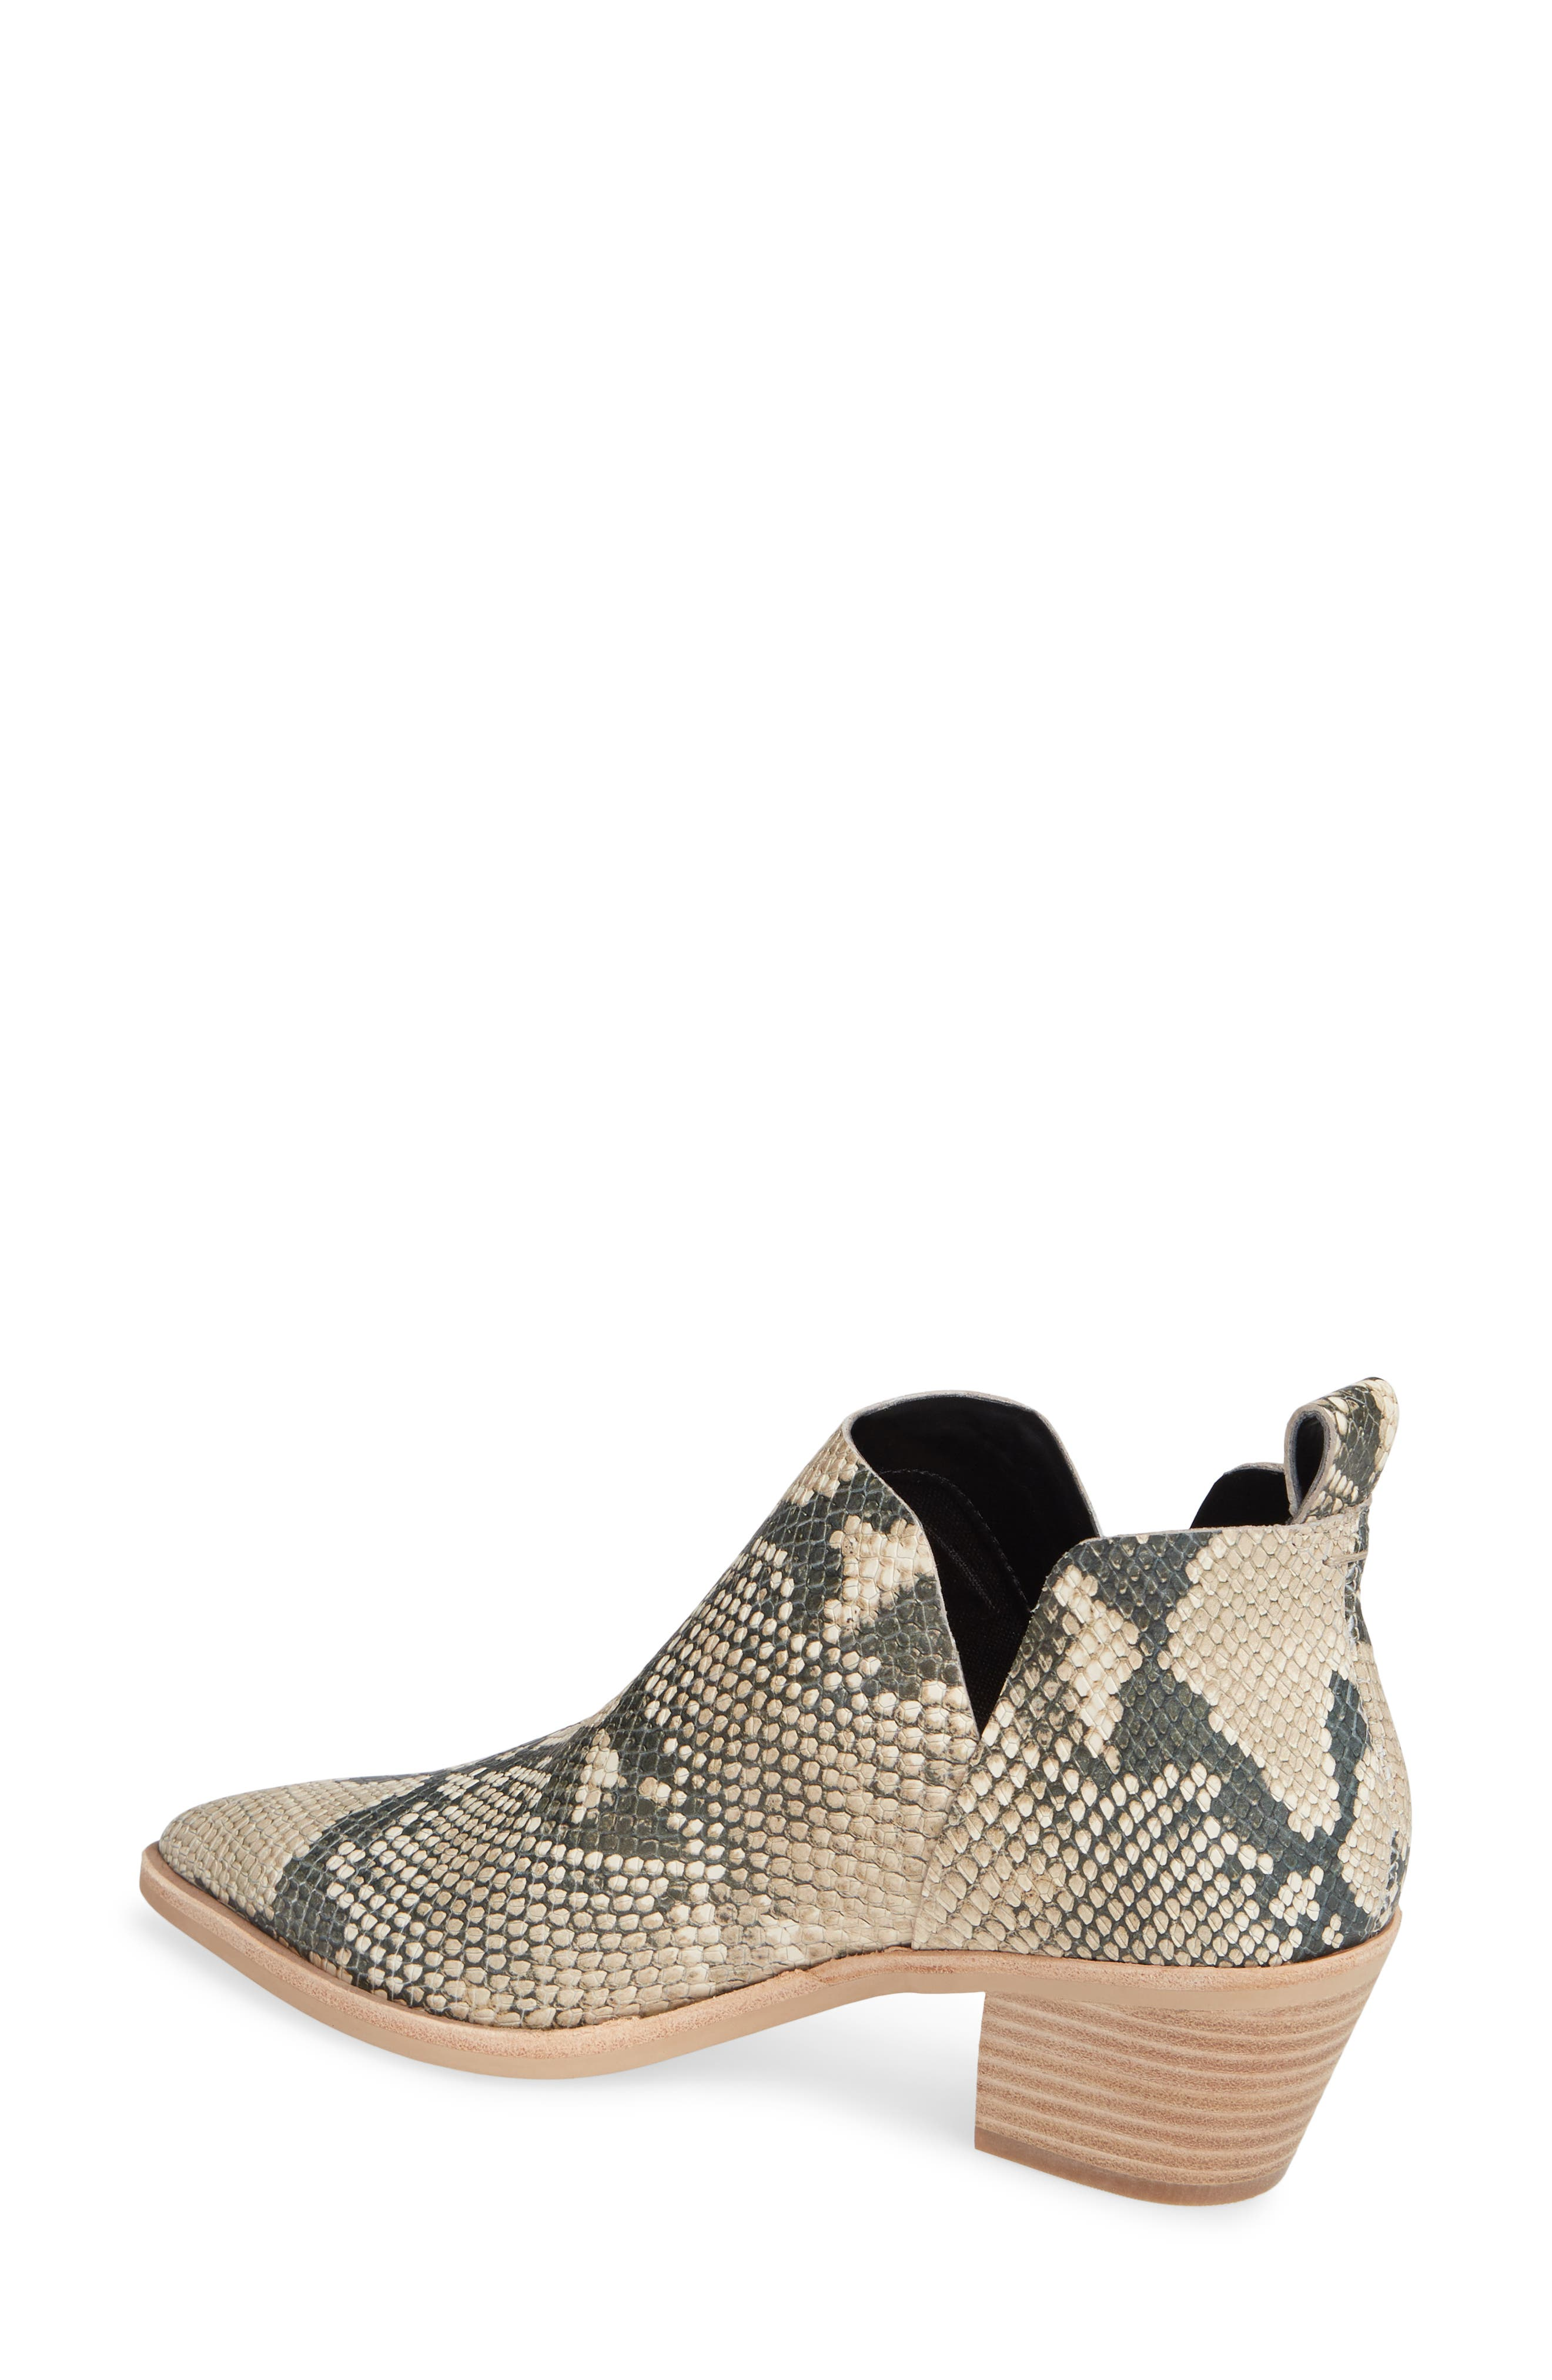 DOLCE VITA,                             Sonni Pointy Toe Bootie,                             Alternate thumbnail 2, color,                             SNAKE PRINT EMBOSSED LEATHER